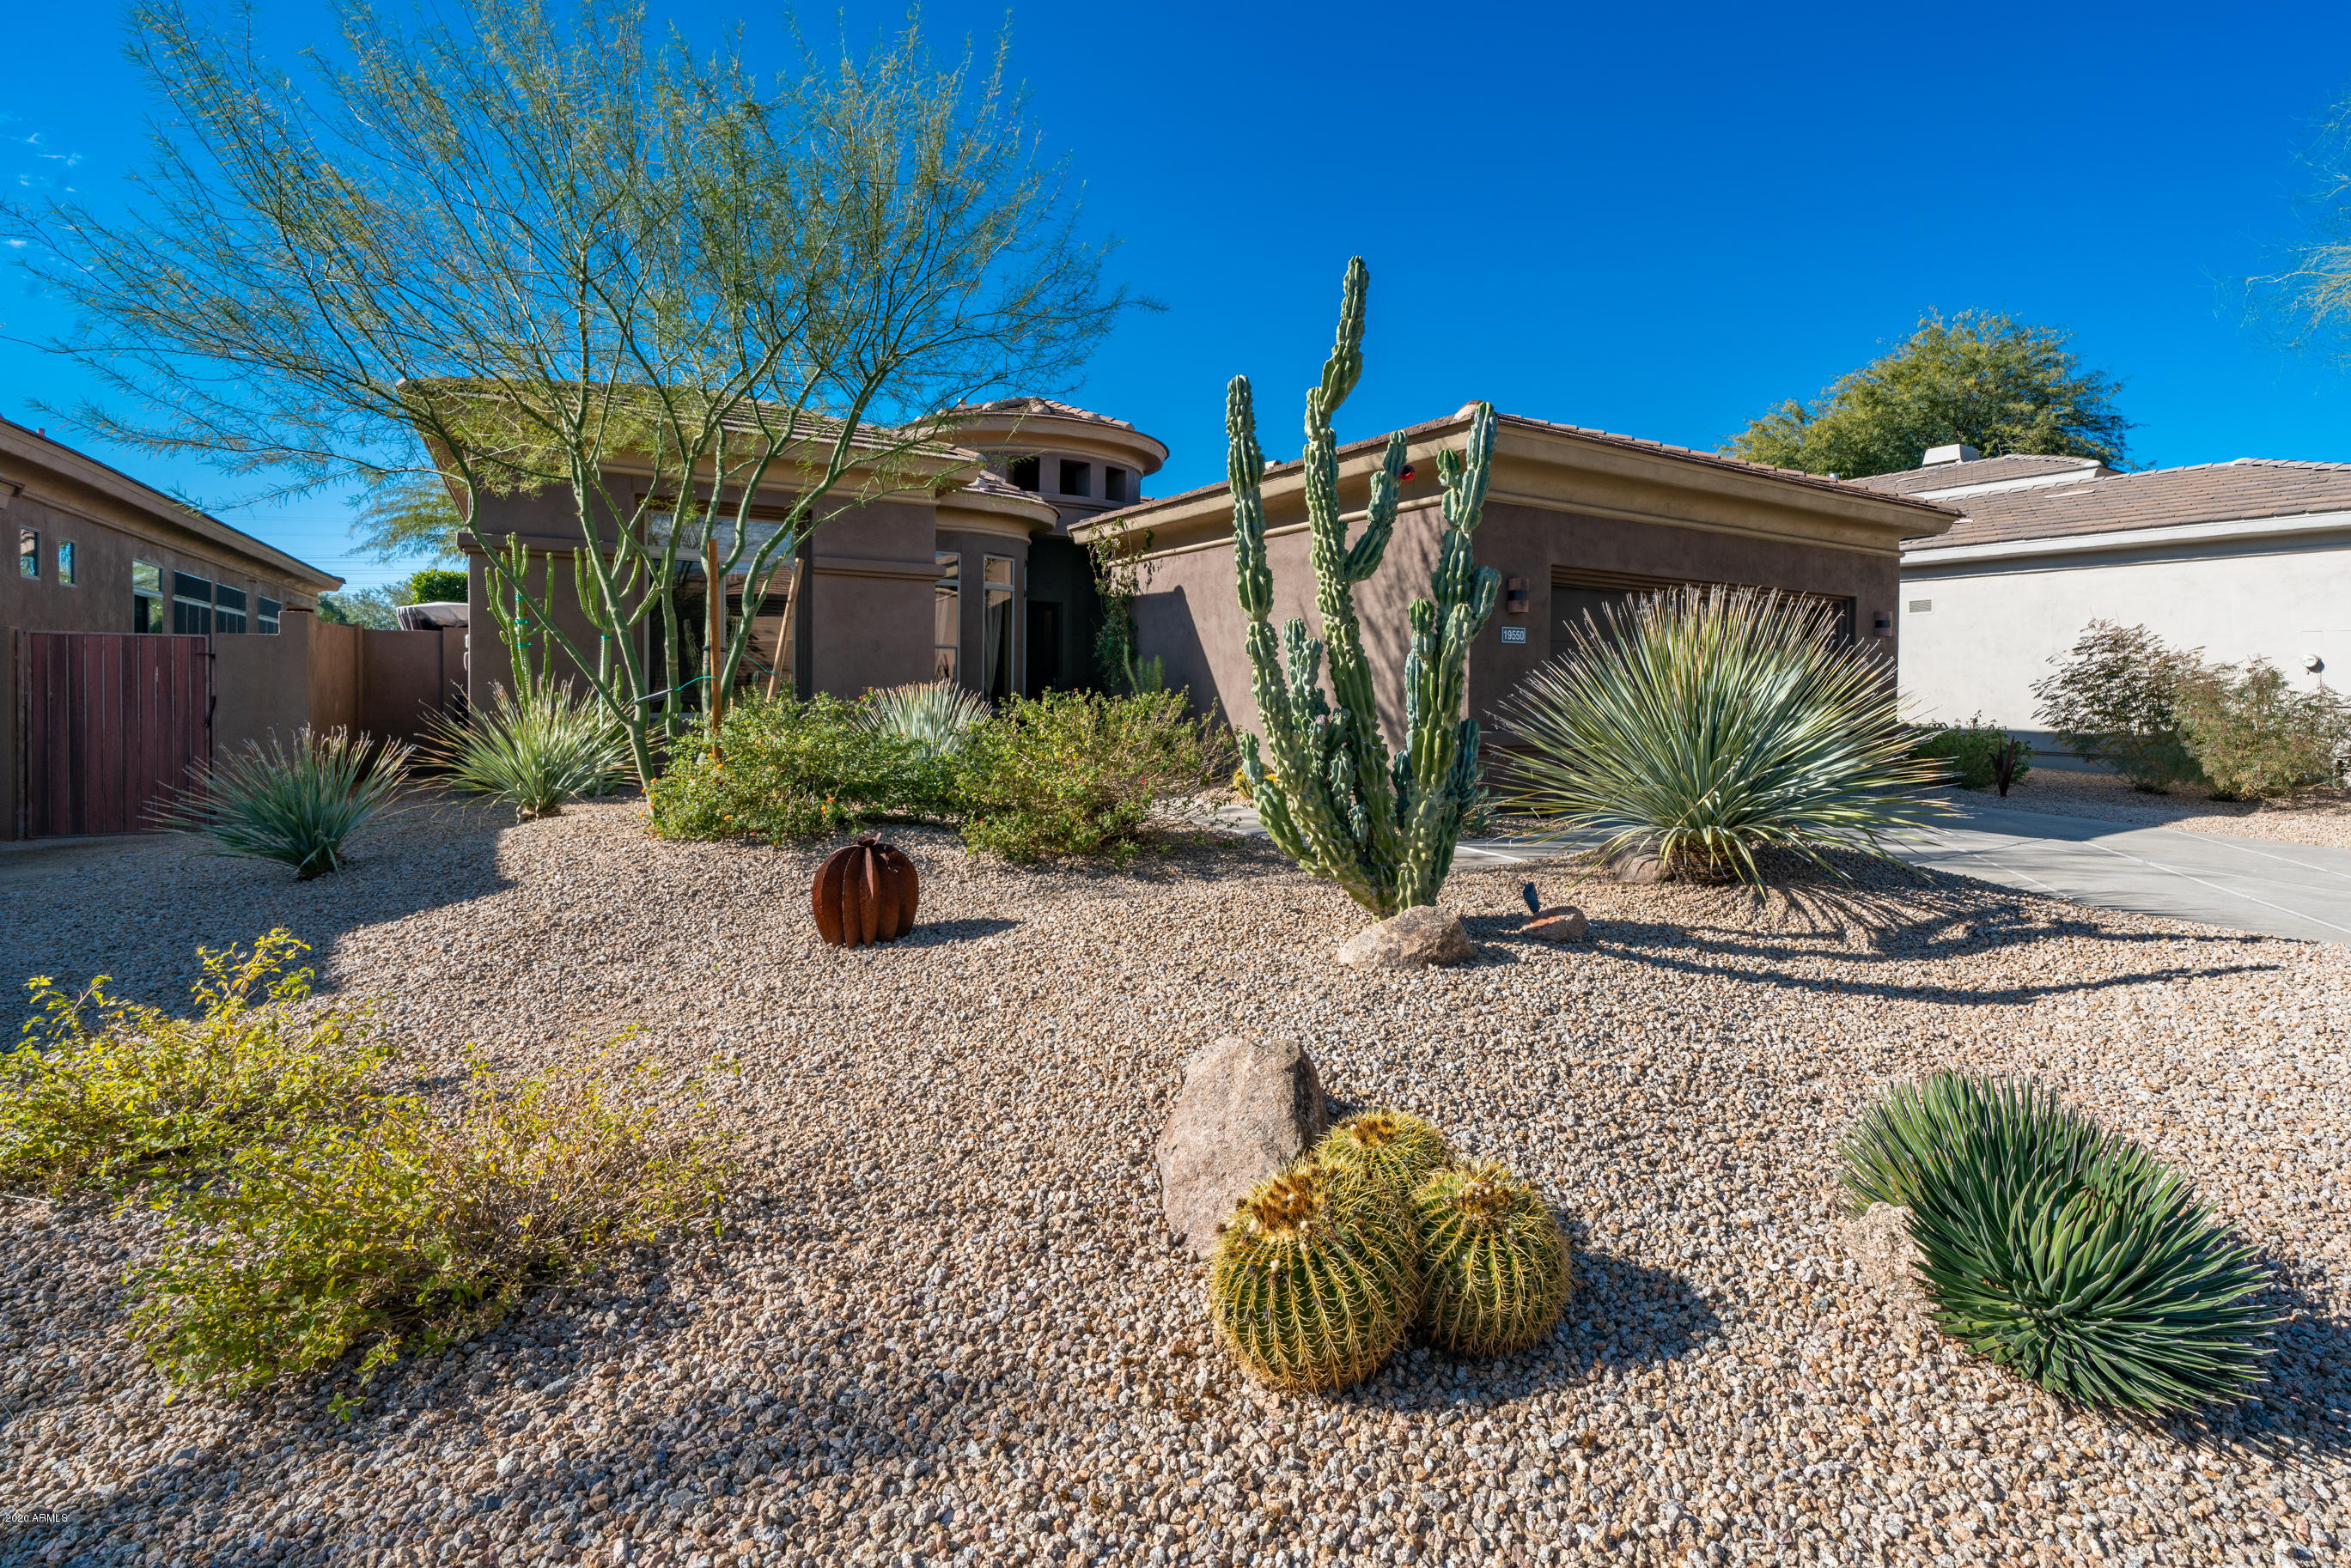 Photo of 19550 N 84TH Street, Scottsdale, AZ 85255